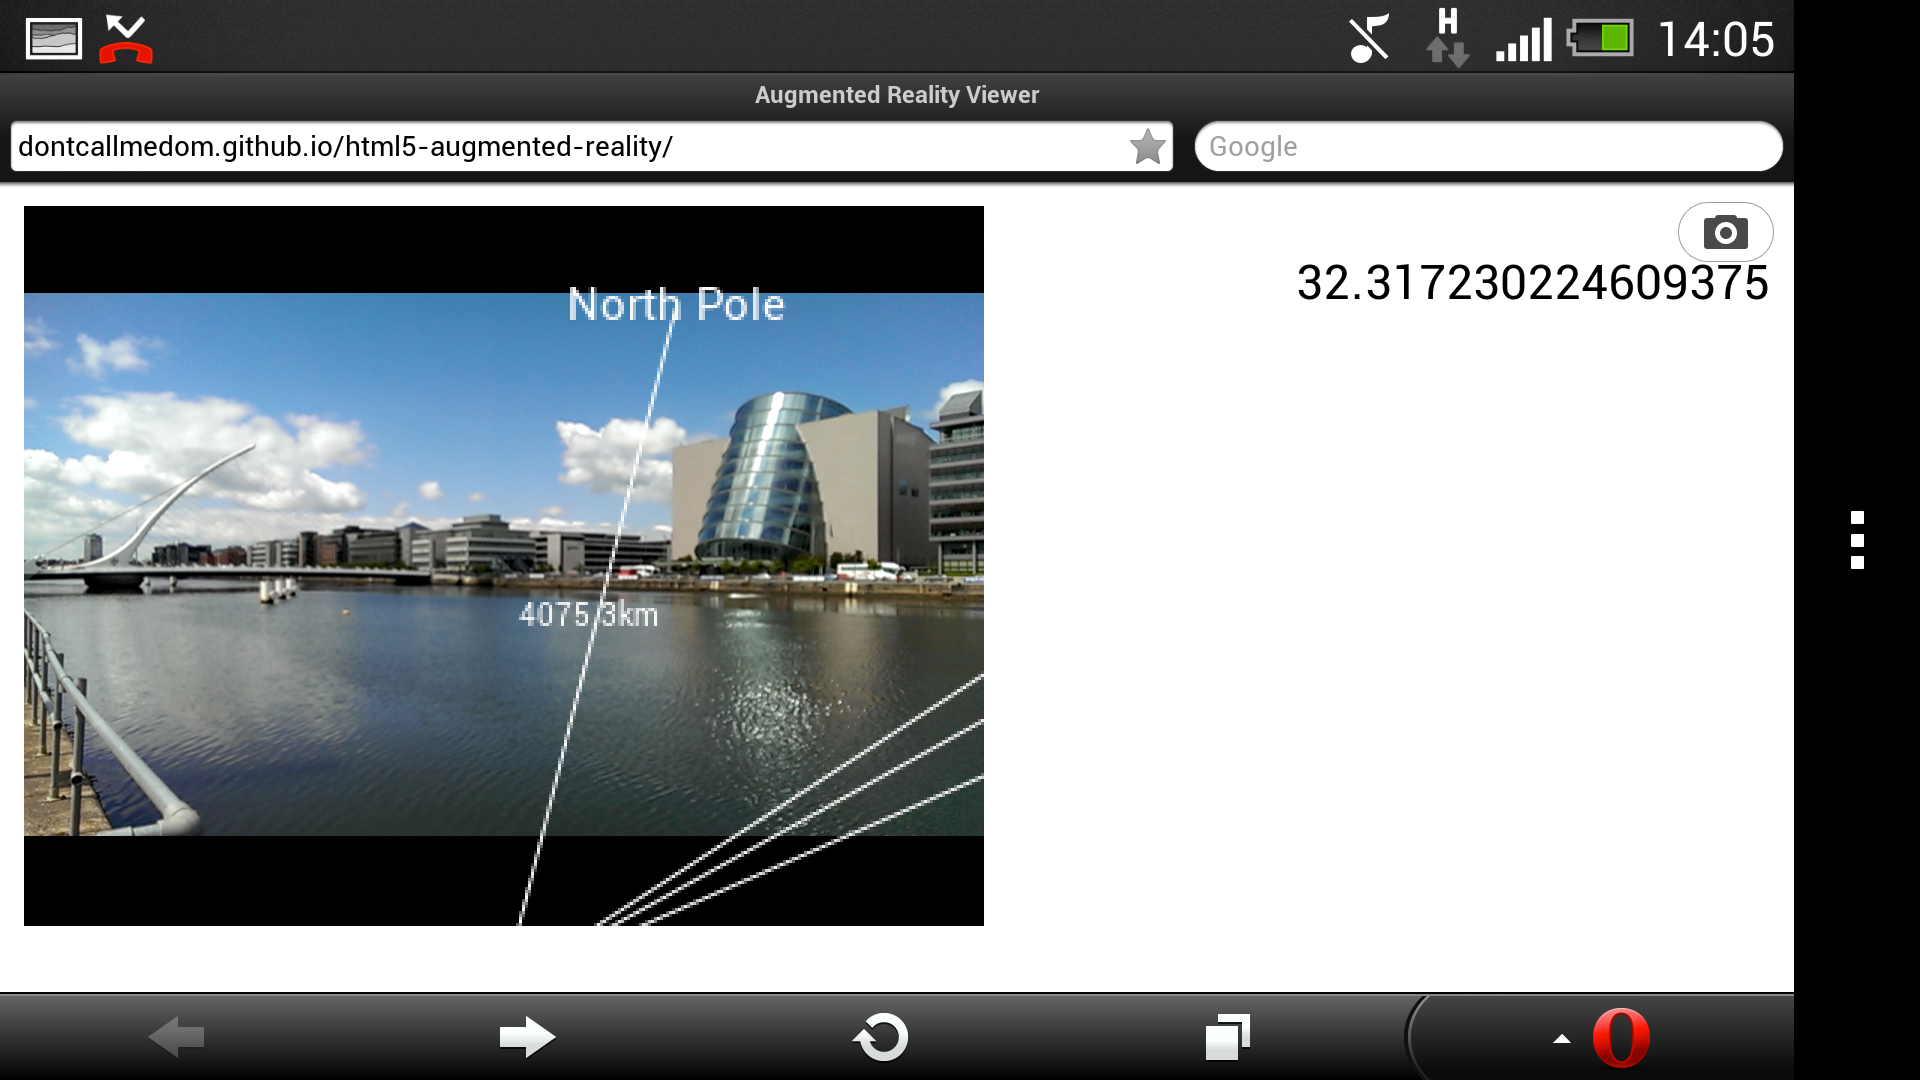 Web-based augmented reality proof of concept demo in mobile browser